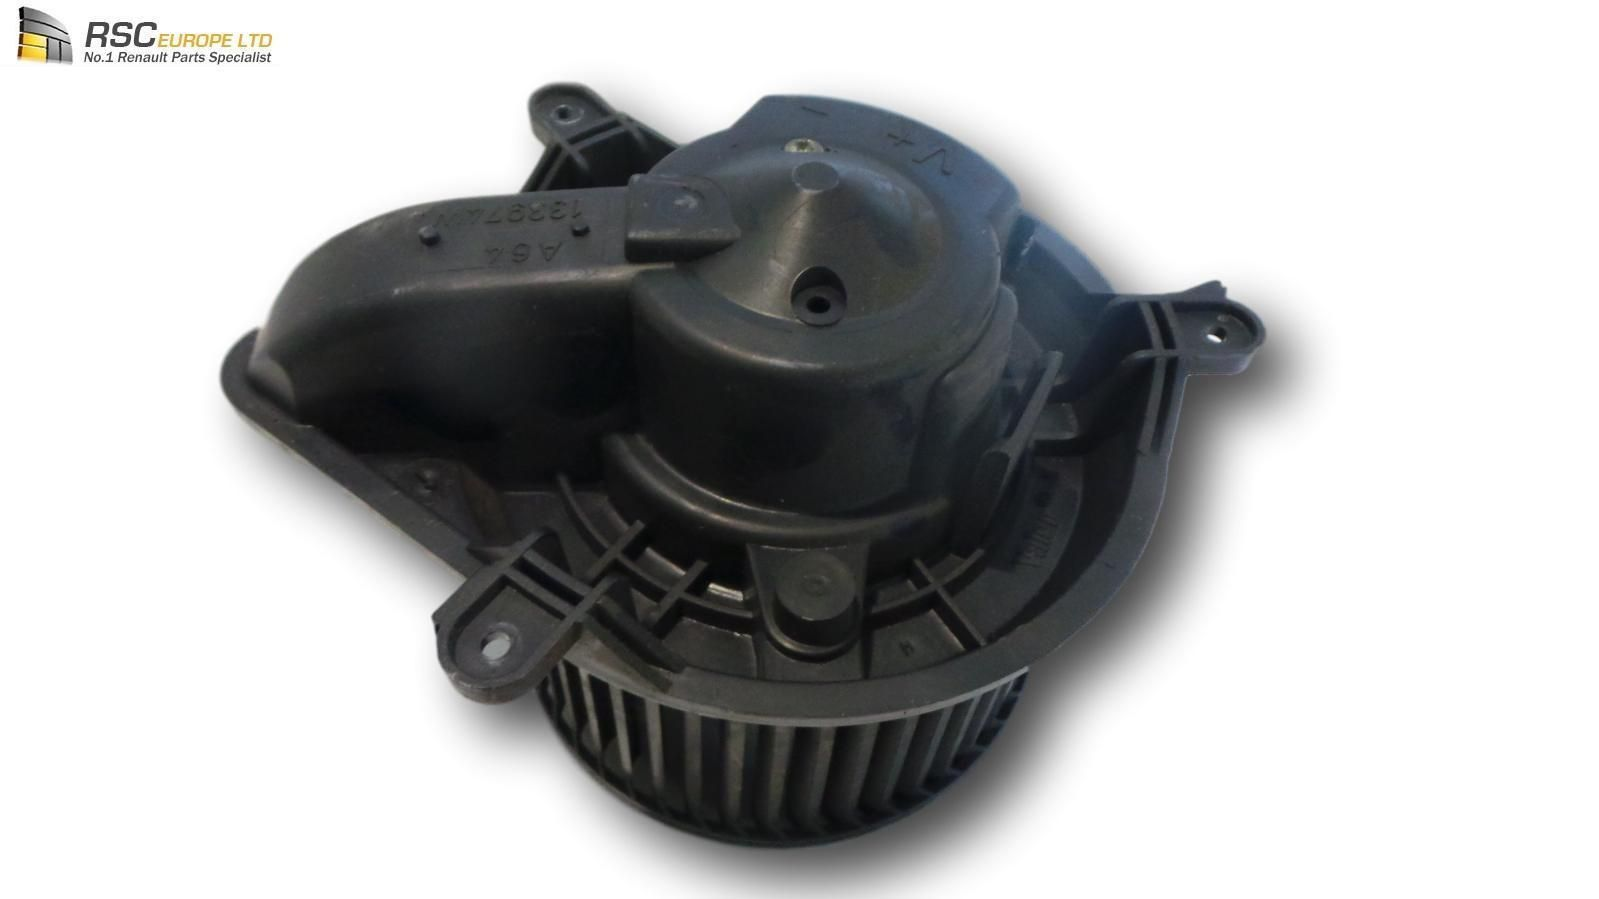 Renault Master Vauxhall Movano Heater Blower Fan Motor